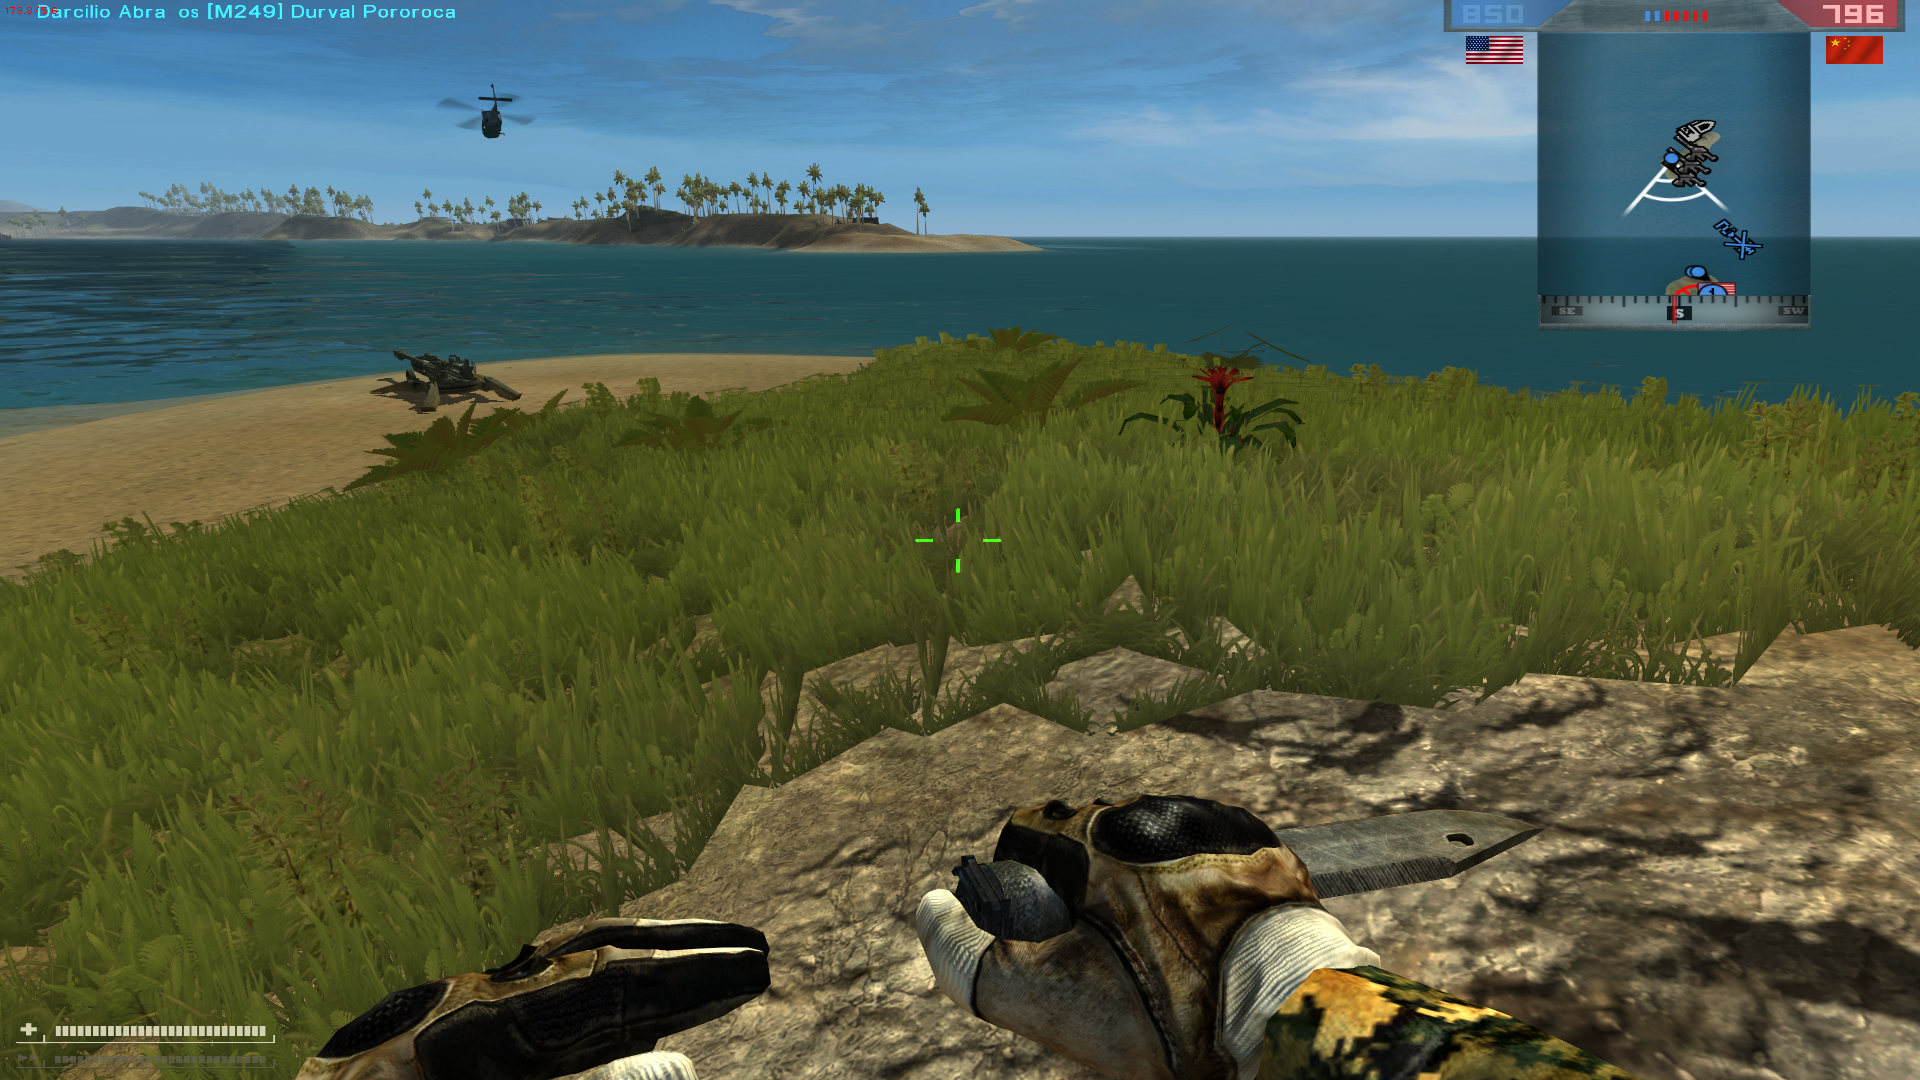 Battlefield 2 Screenshot 2020 08